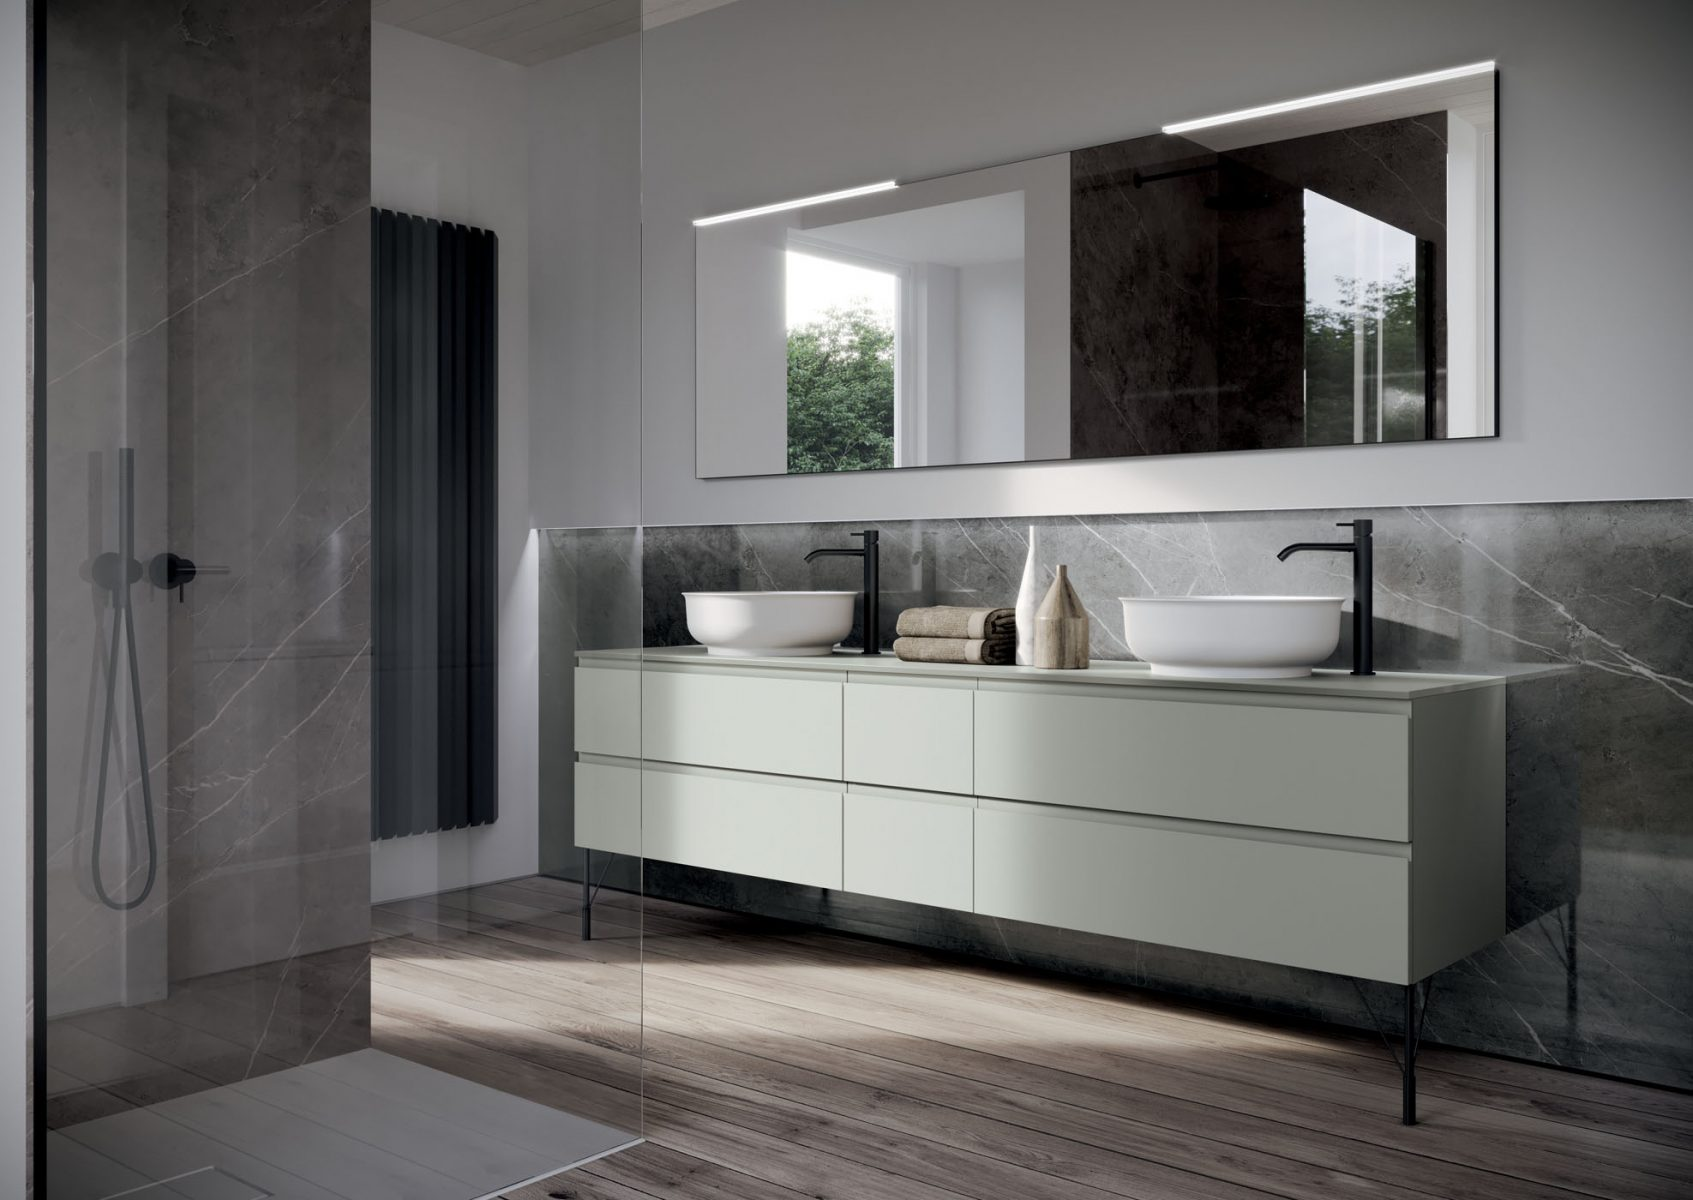 Form beauty meets functionality ideagroup for Vendita mobili bagno